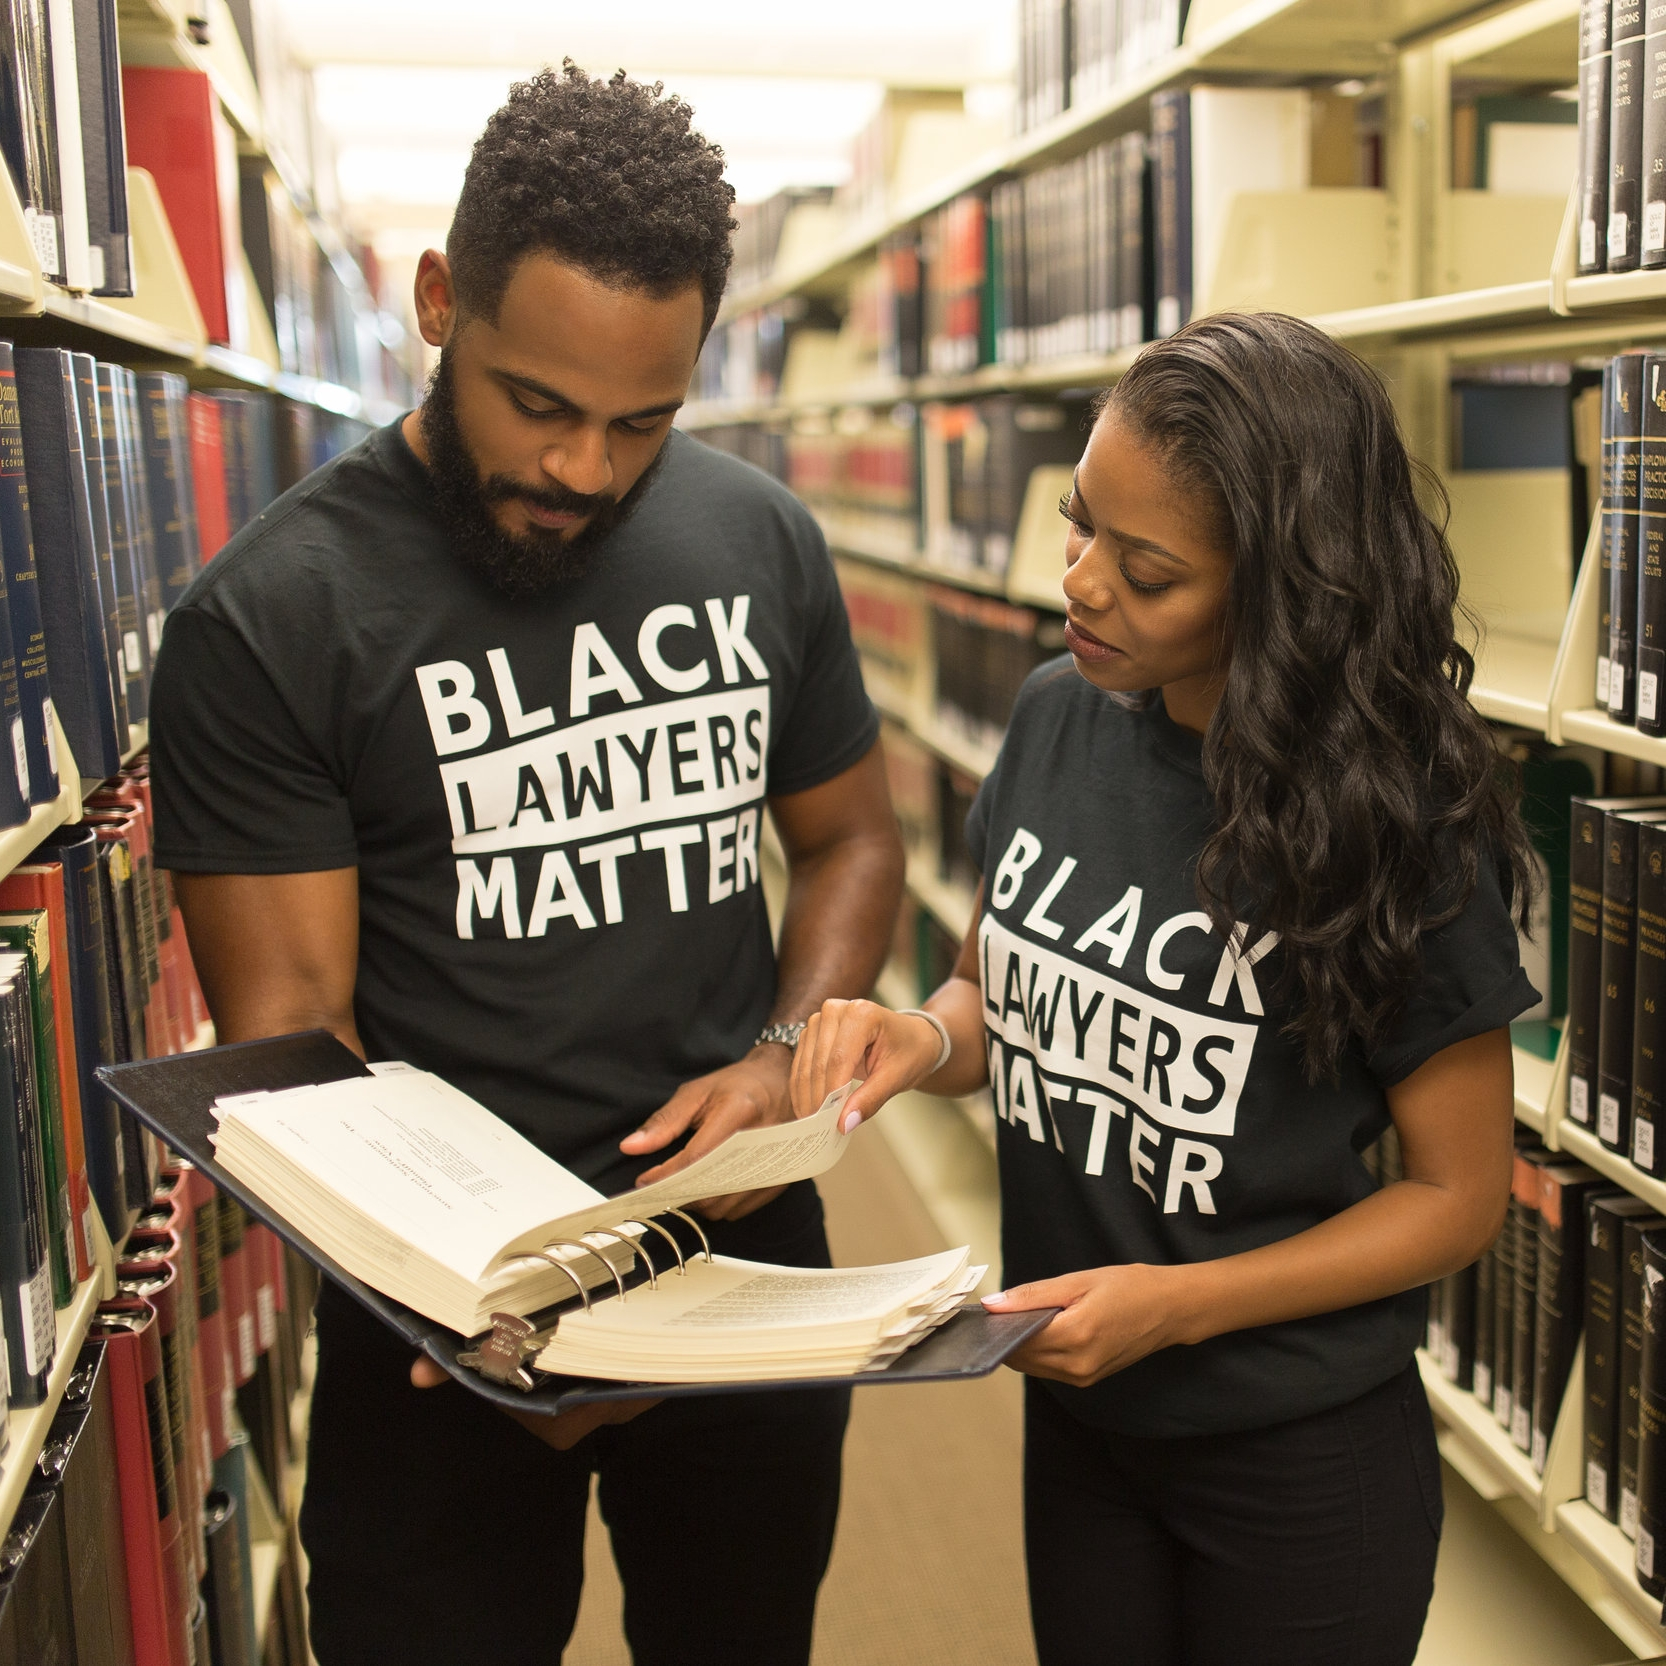 membership - Membership committee is committed to the development, social support and recruitment of Law 4 Black Lives DC. The committee maintains our roster of active members and L4BL-DC supporters. We also maintain an attorney referral list. If you share our mission and values, please contact us to be added to the list.